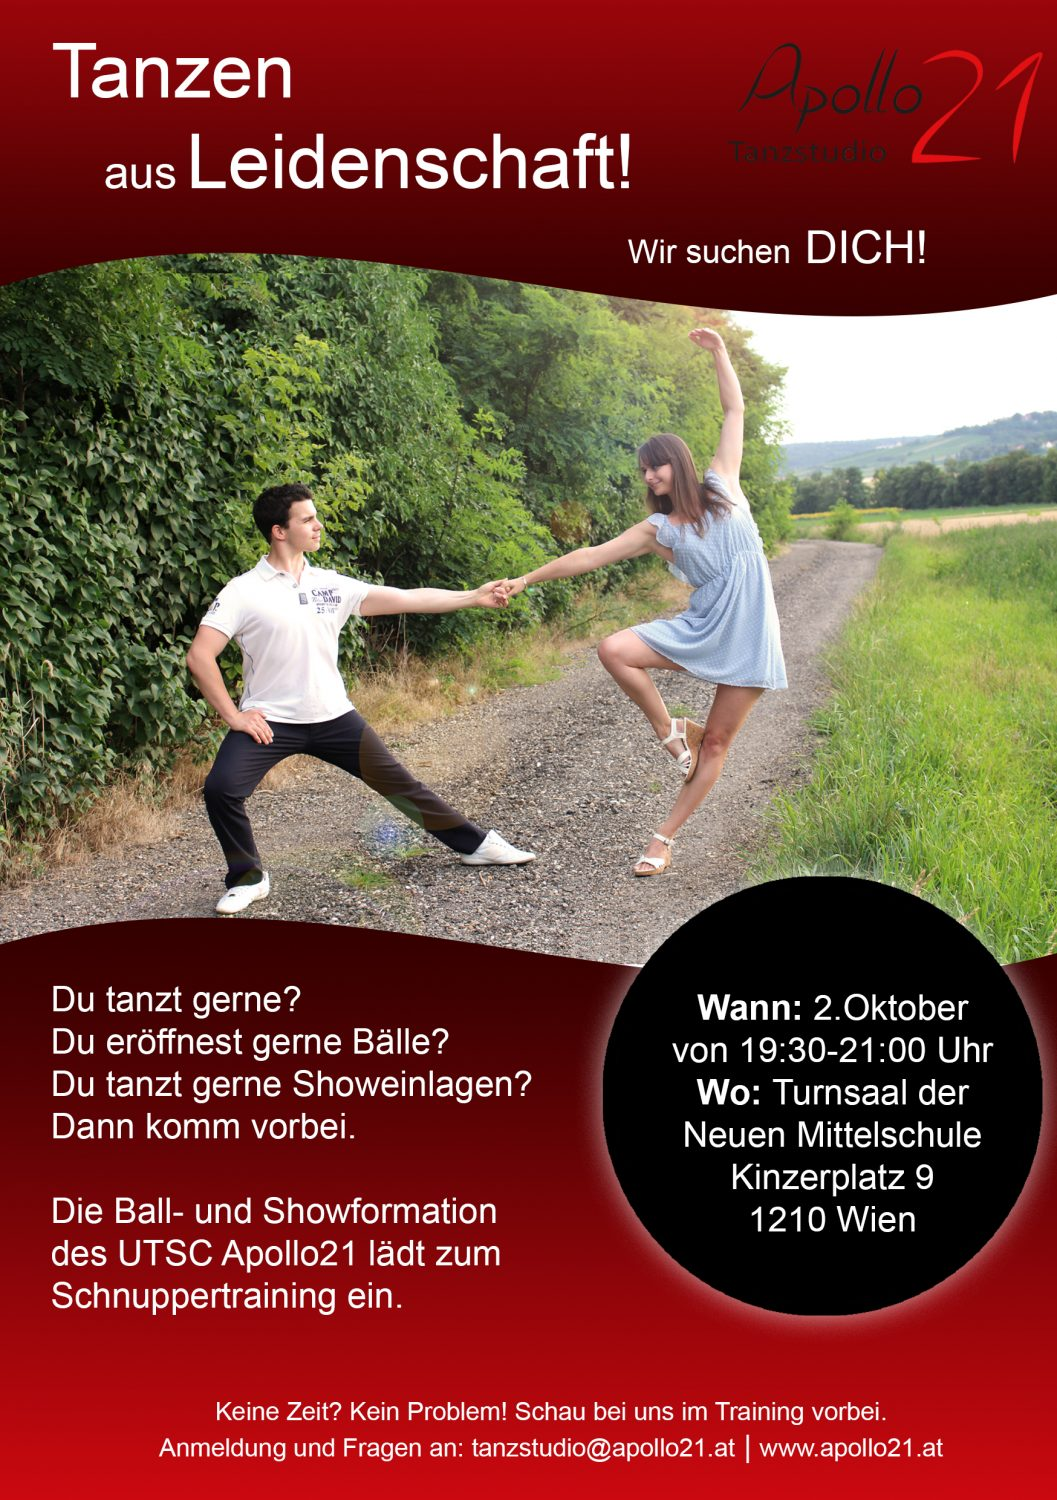 Schnuppertraining: Ball- und Showformation